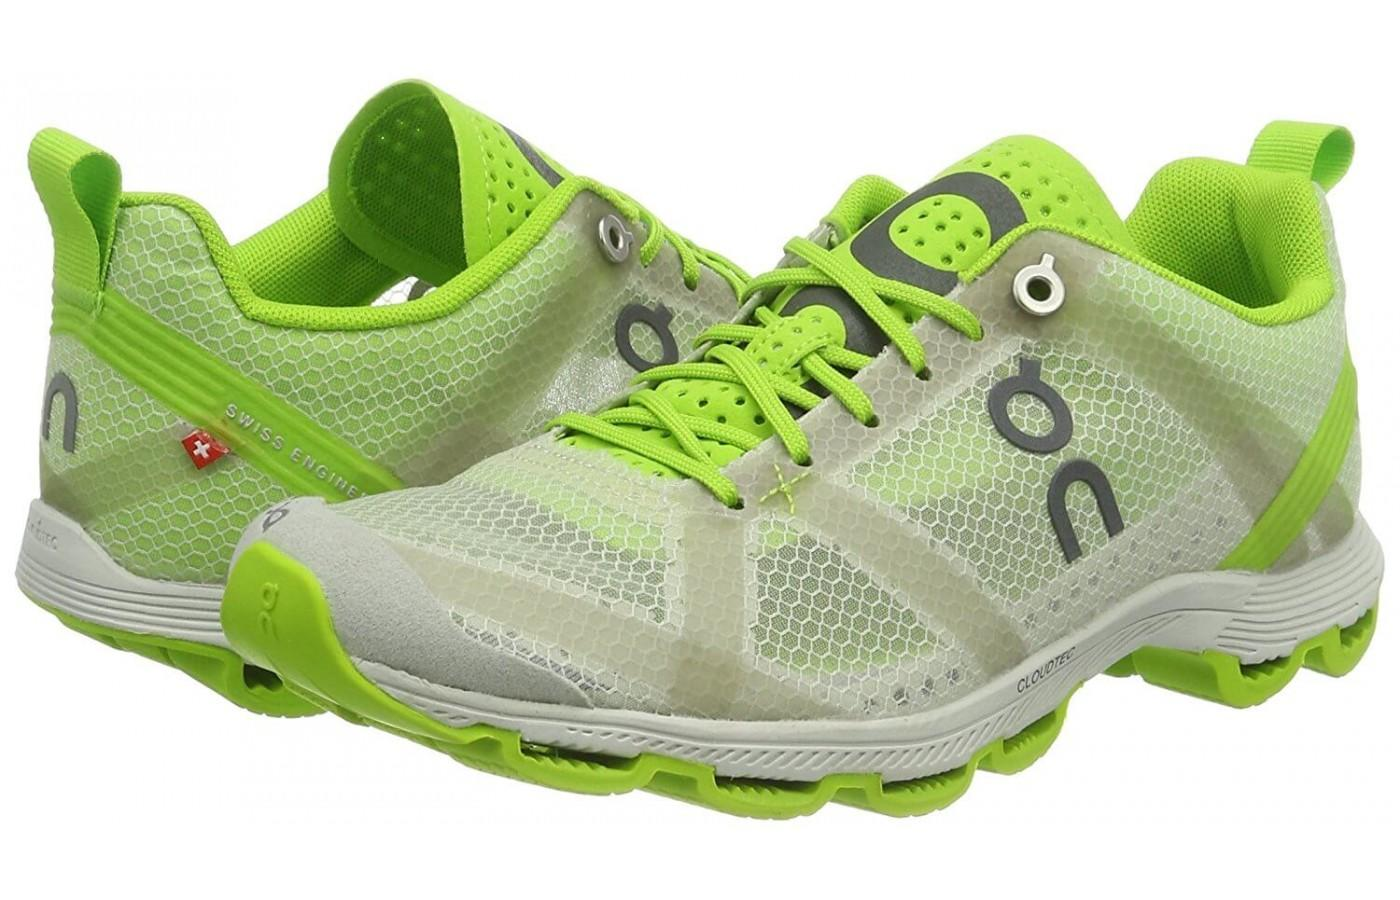 here's a pair of the Cloudracer running shoes